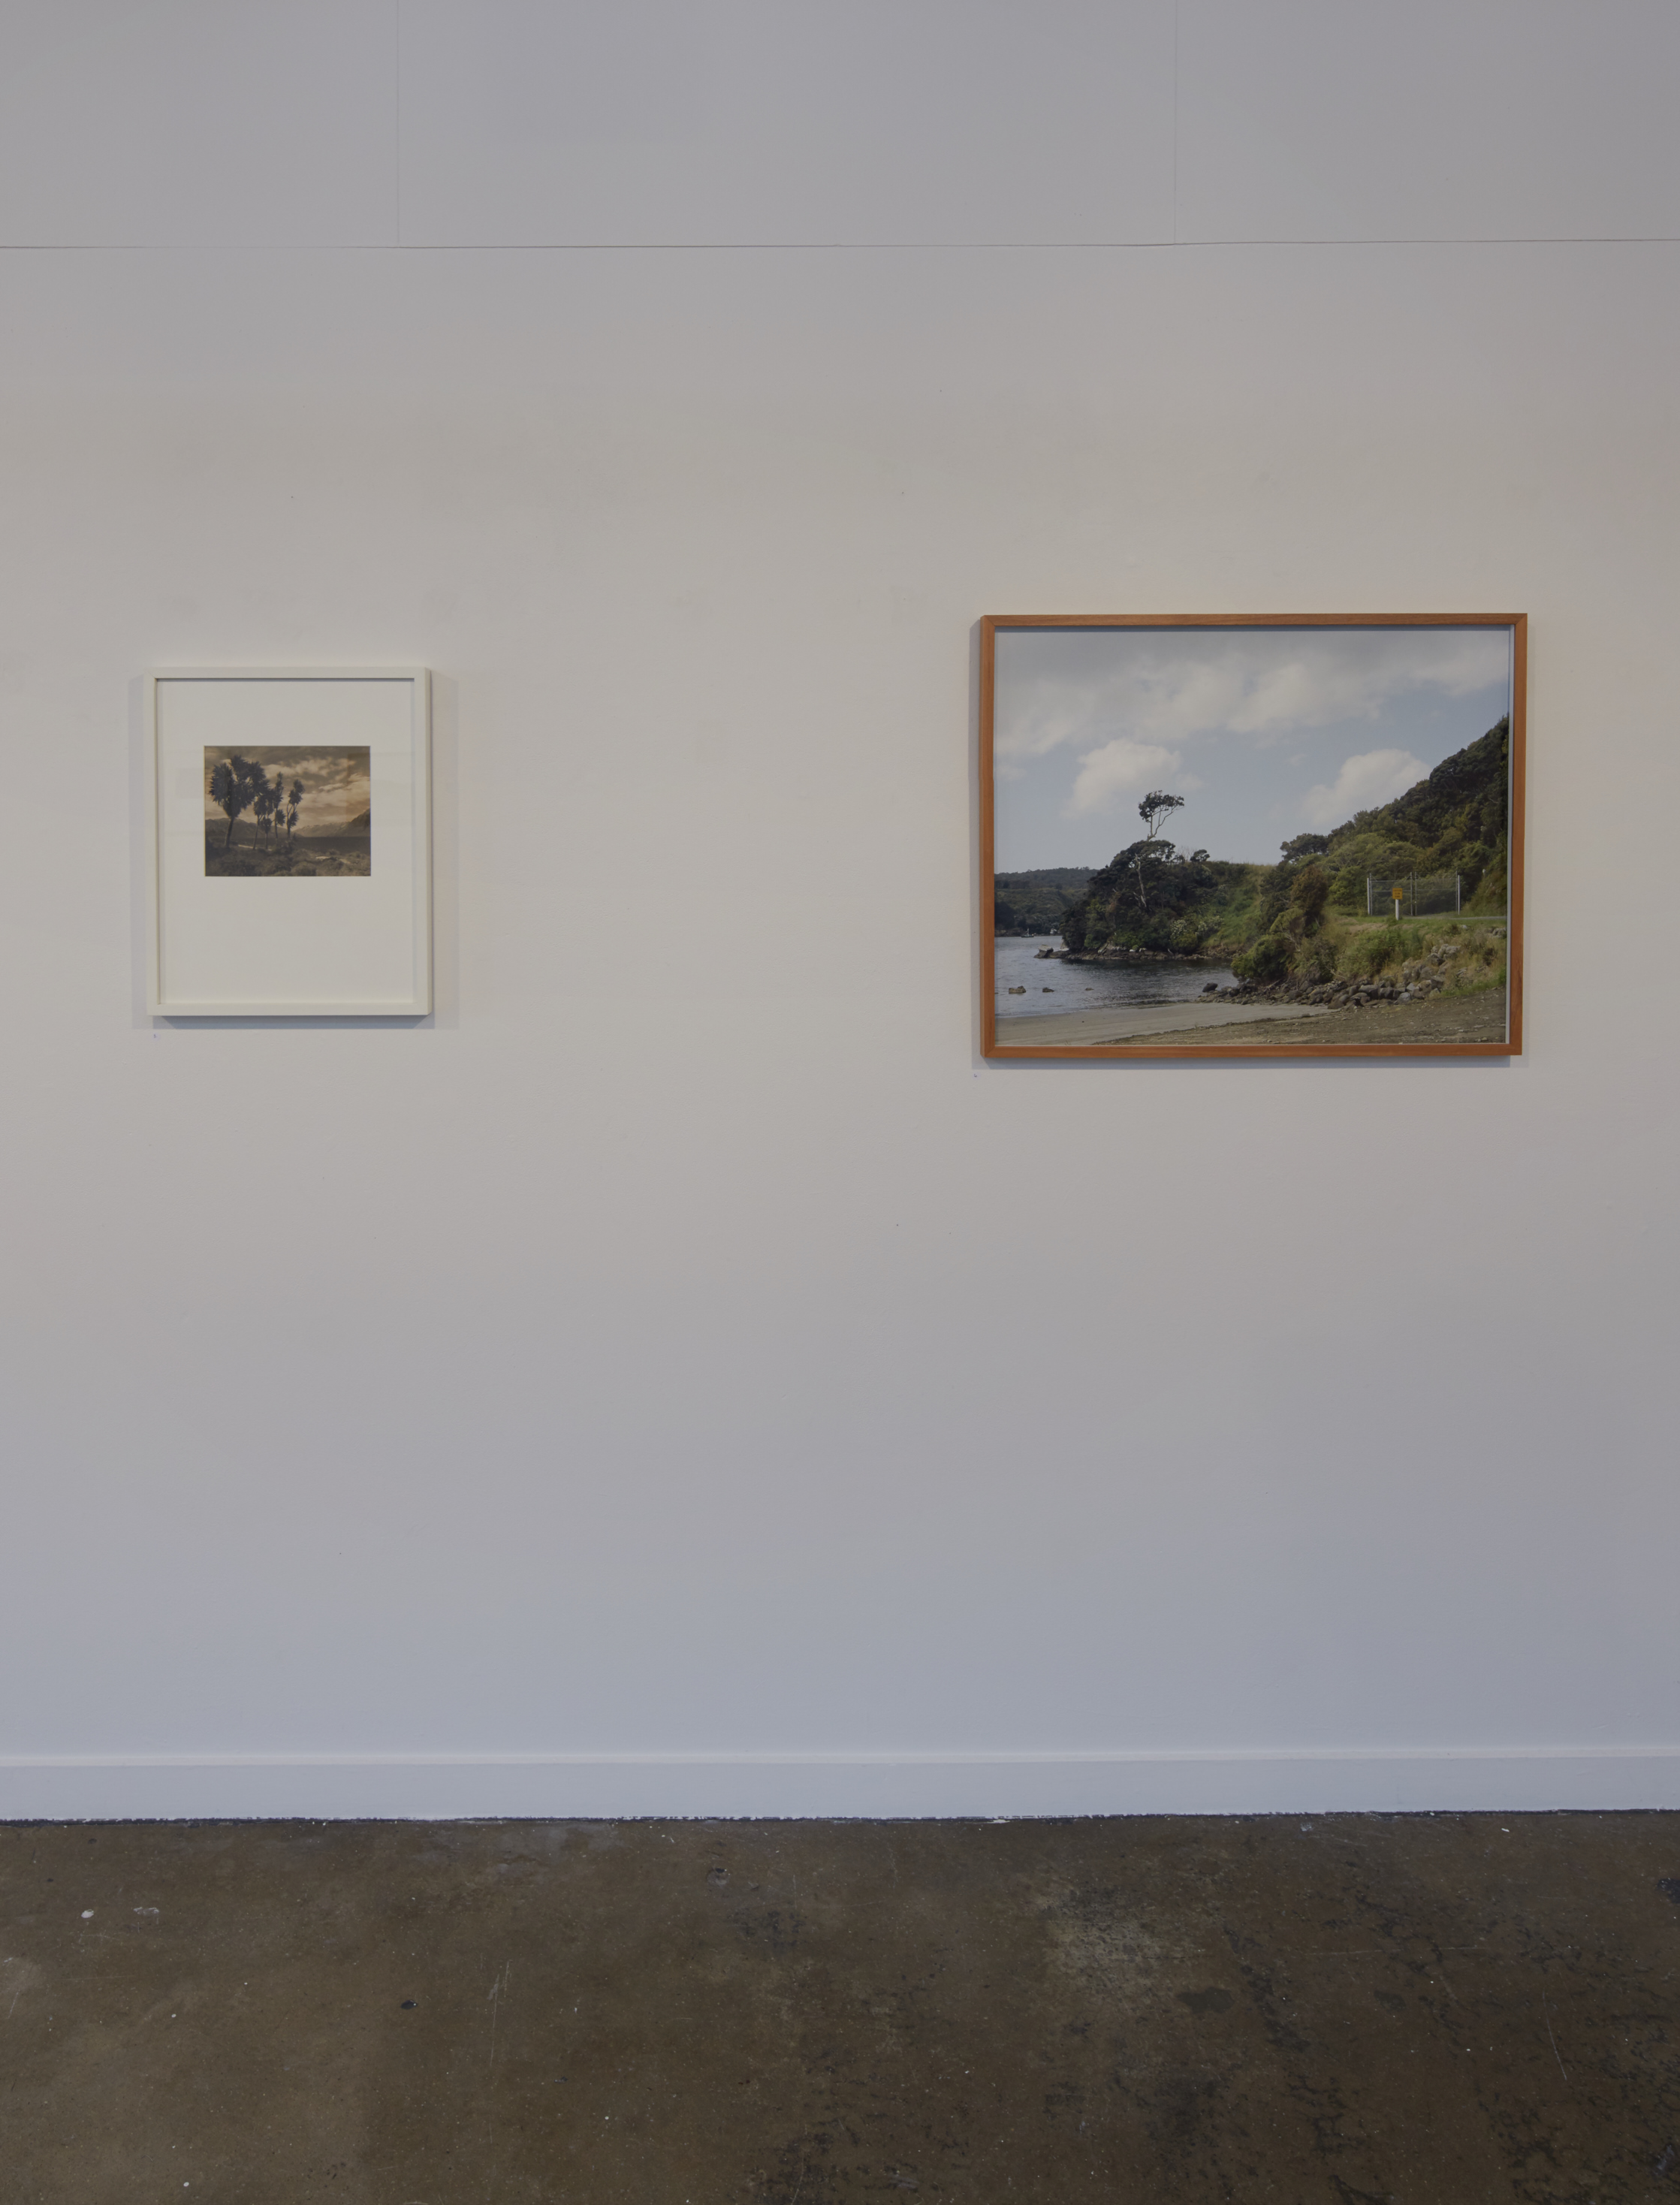 Contemplations of Place: Eight Decades On  George Chance & Anton Maurer  curated by Paul McNamara Depot Artspace, 2016